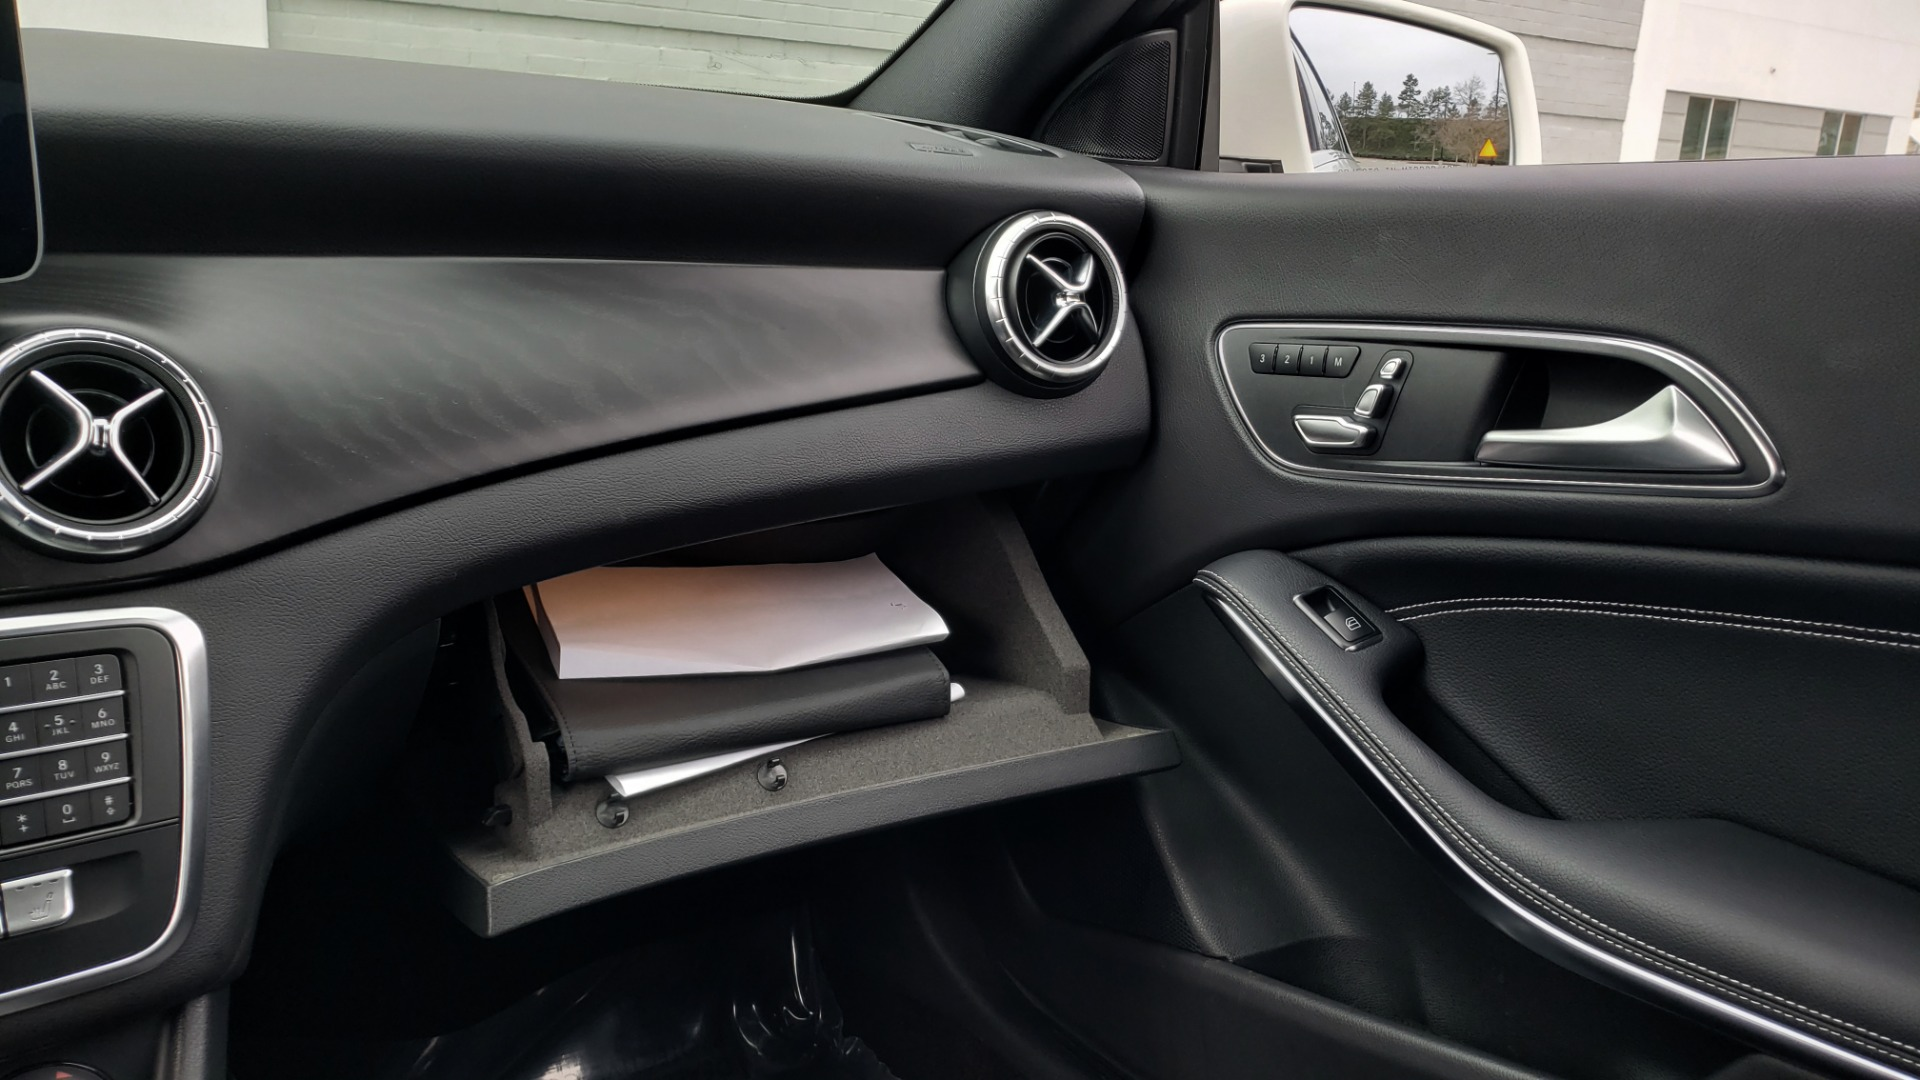 Used 2018 Mercedes-Benz CLA 250 PREMIUM / NAV / PANO-ROOF / APPLE CARPLAY / REARVIEW for sale $23,995 at Formula Imports in Charlotte NC 28227 52